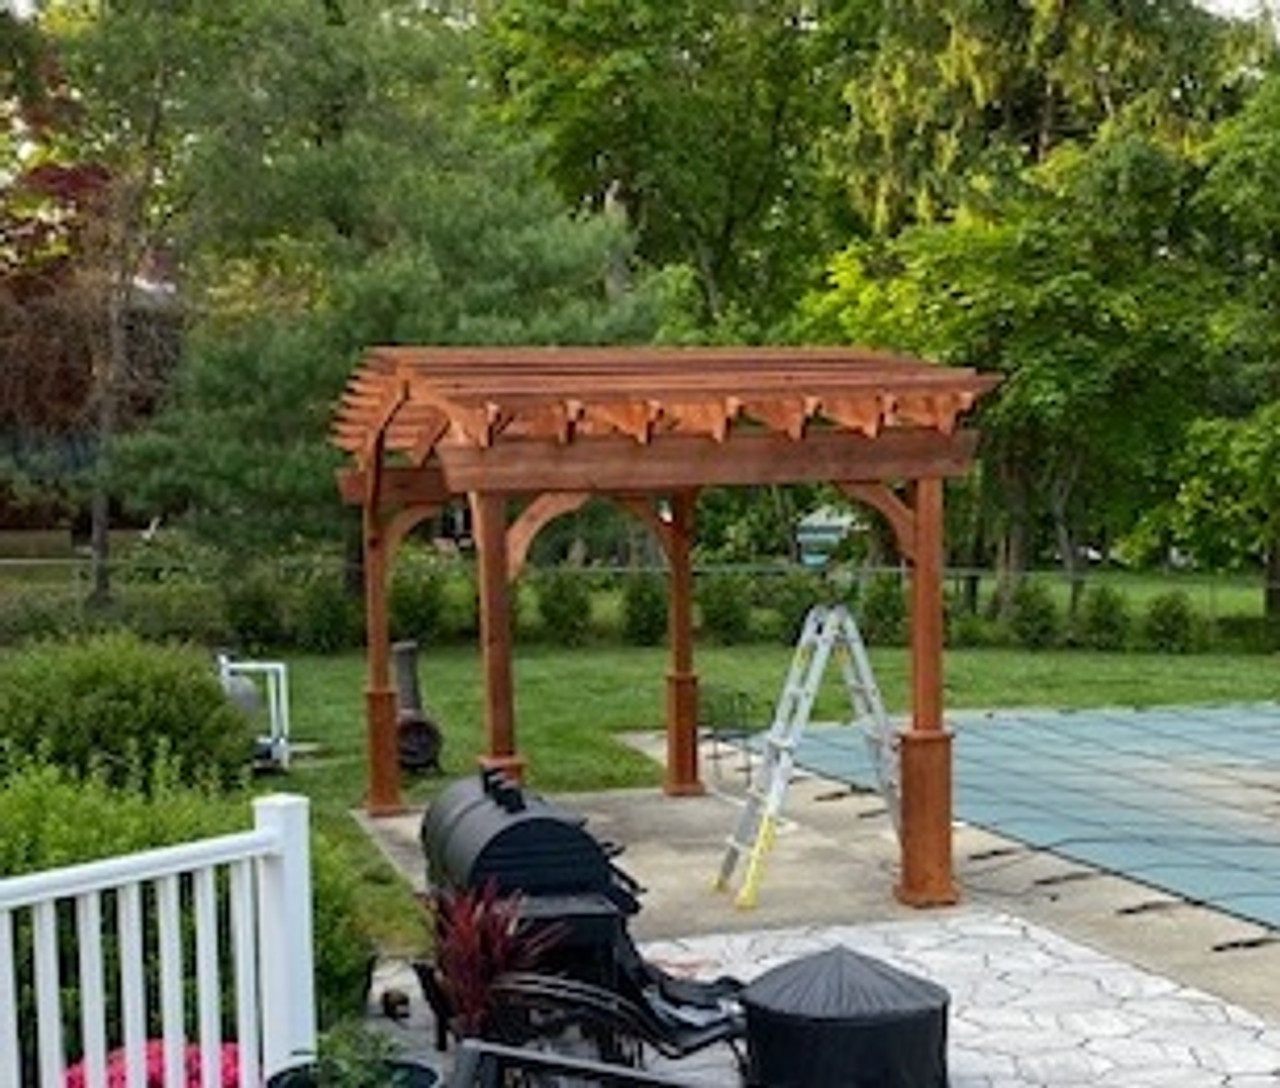 16x8 Arched Cedar Pergola Kit, Redbank, NJ